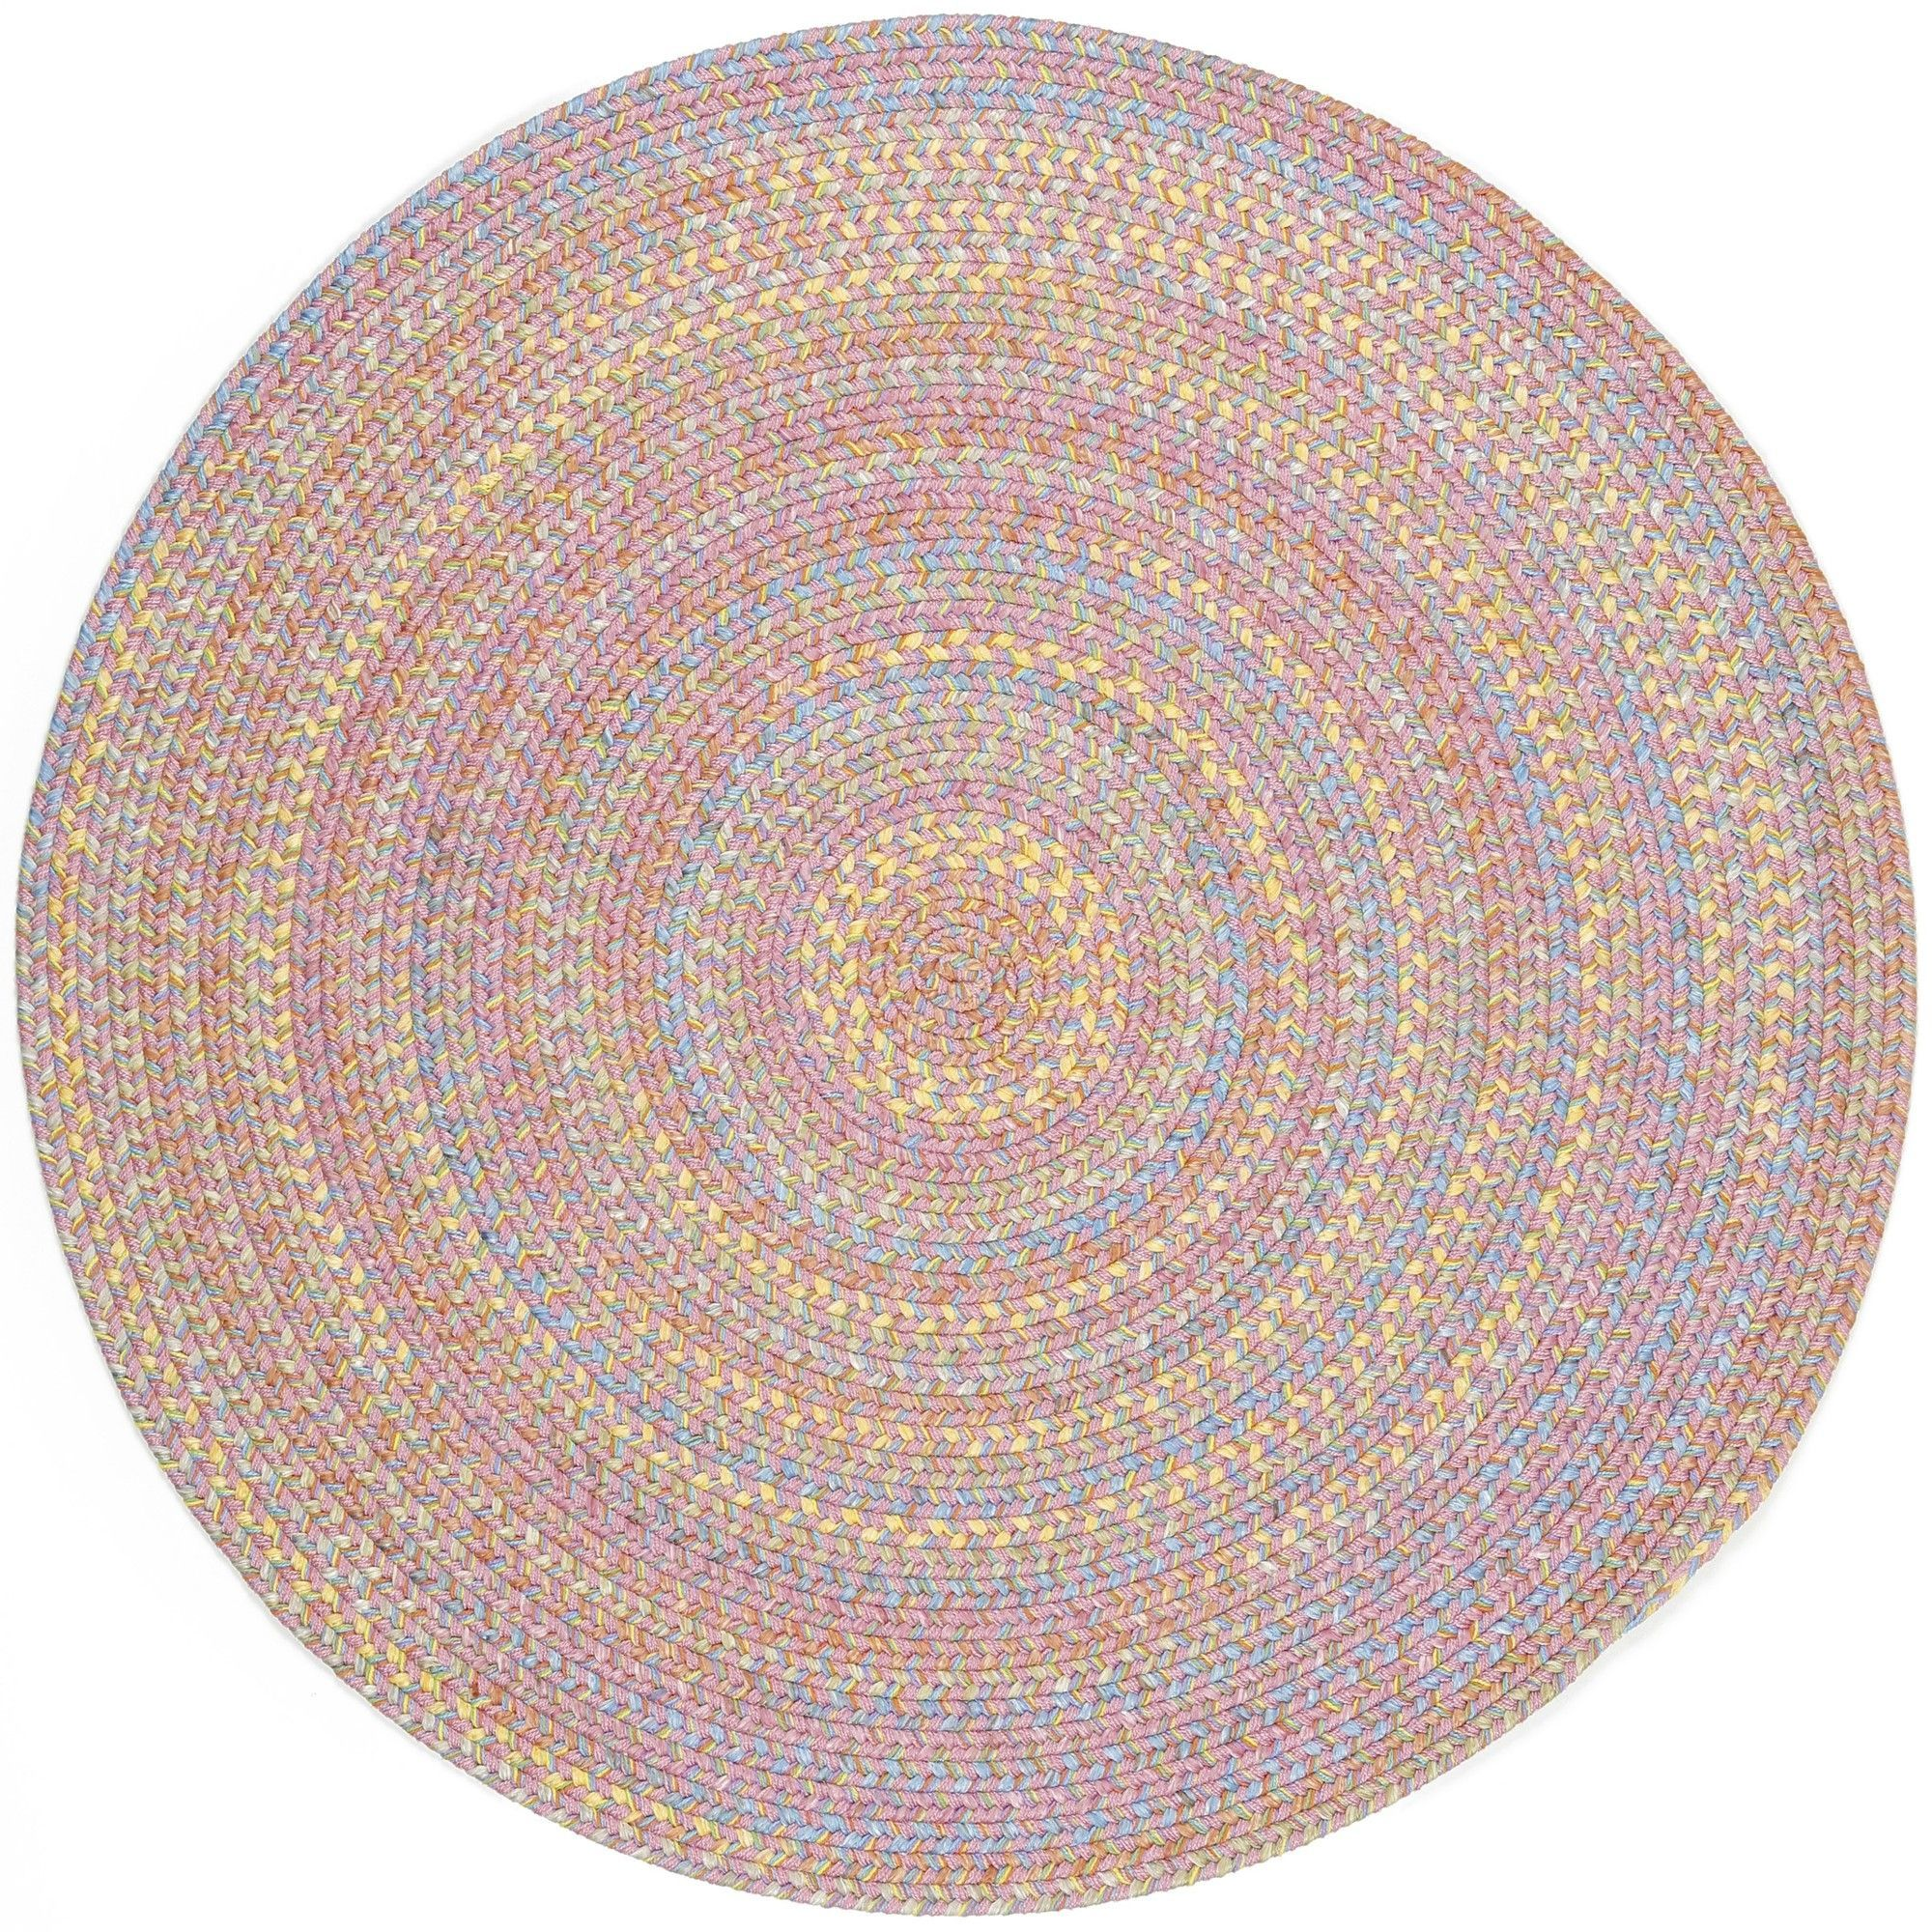 Saidpur Pink Indoor Outdoor Area Rug With Images Rhody Rug Area Rugs Round Braided Rug